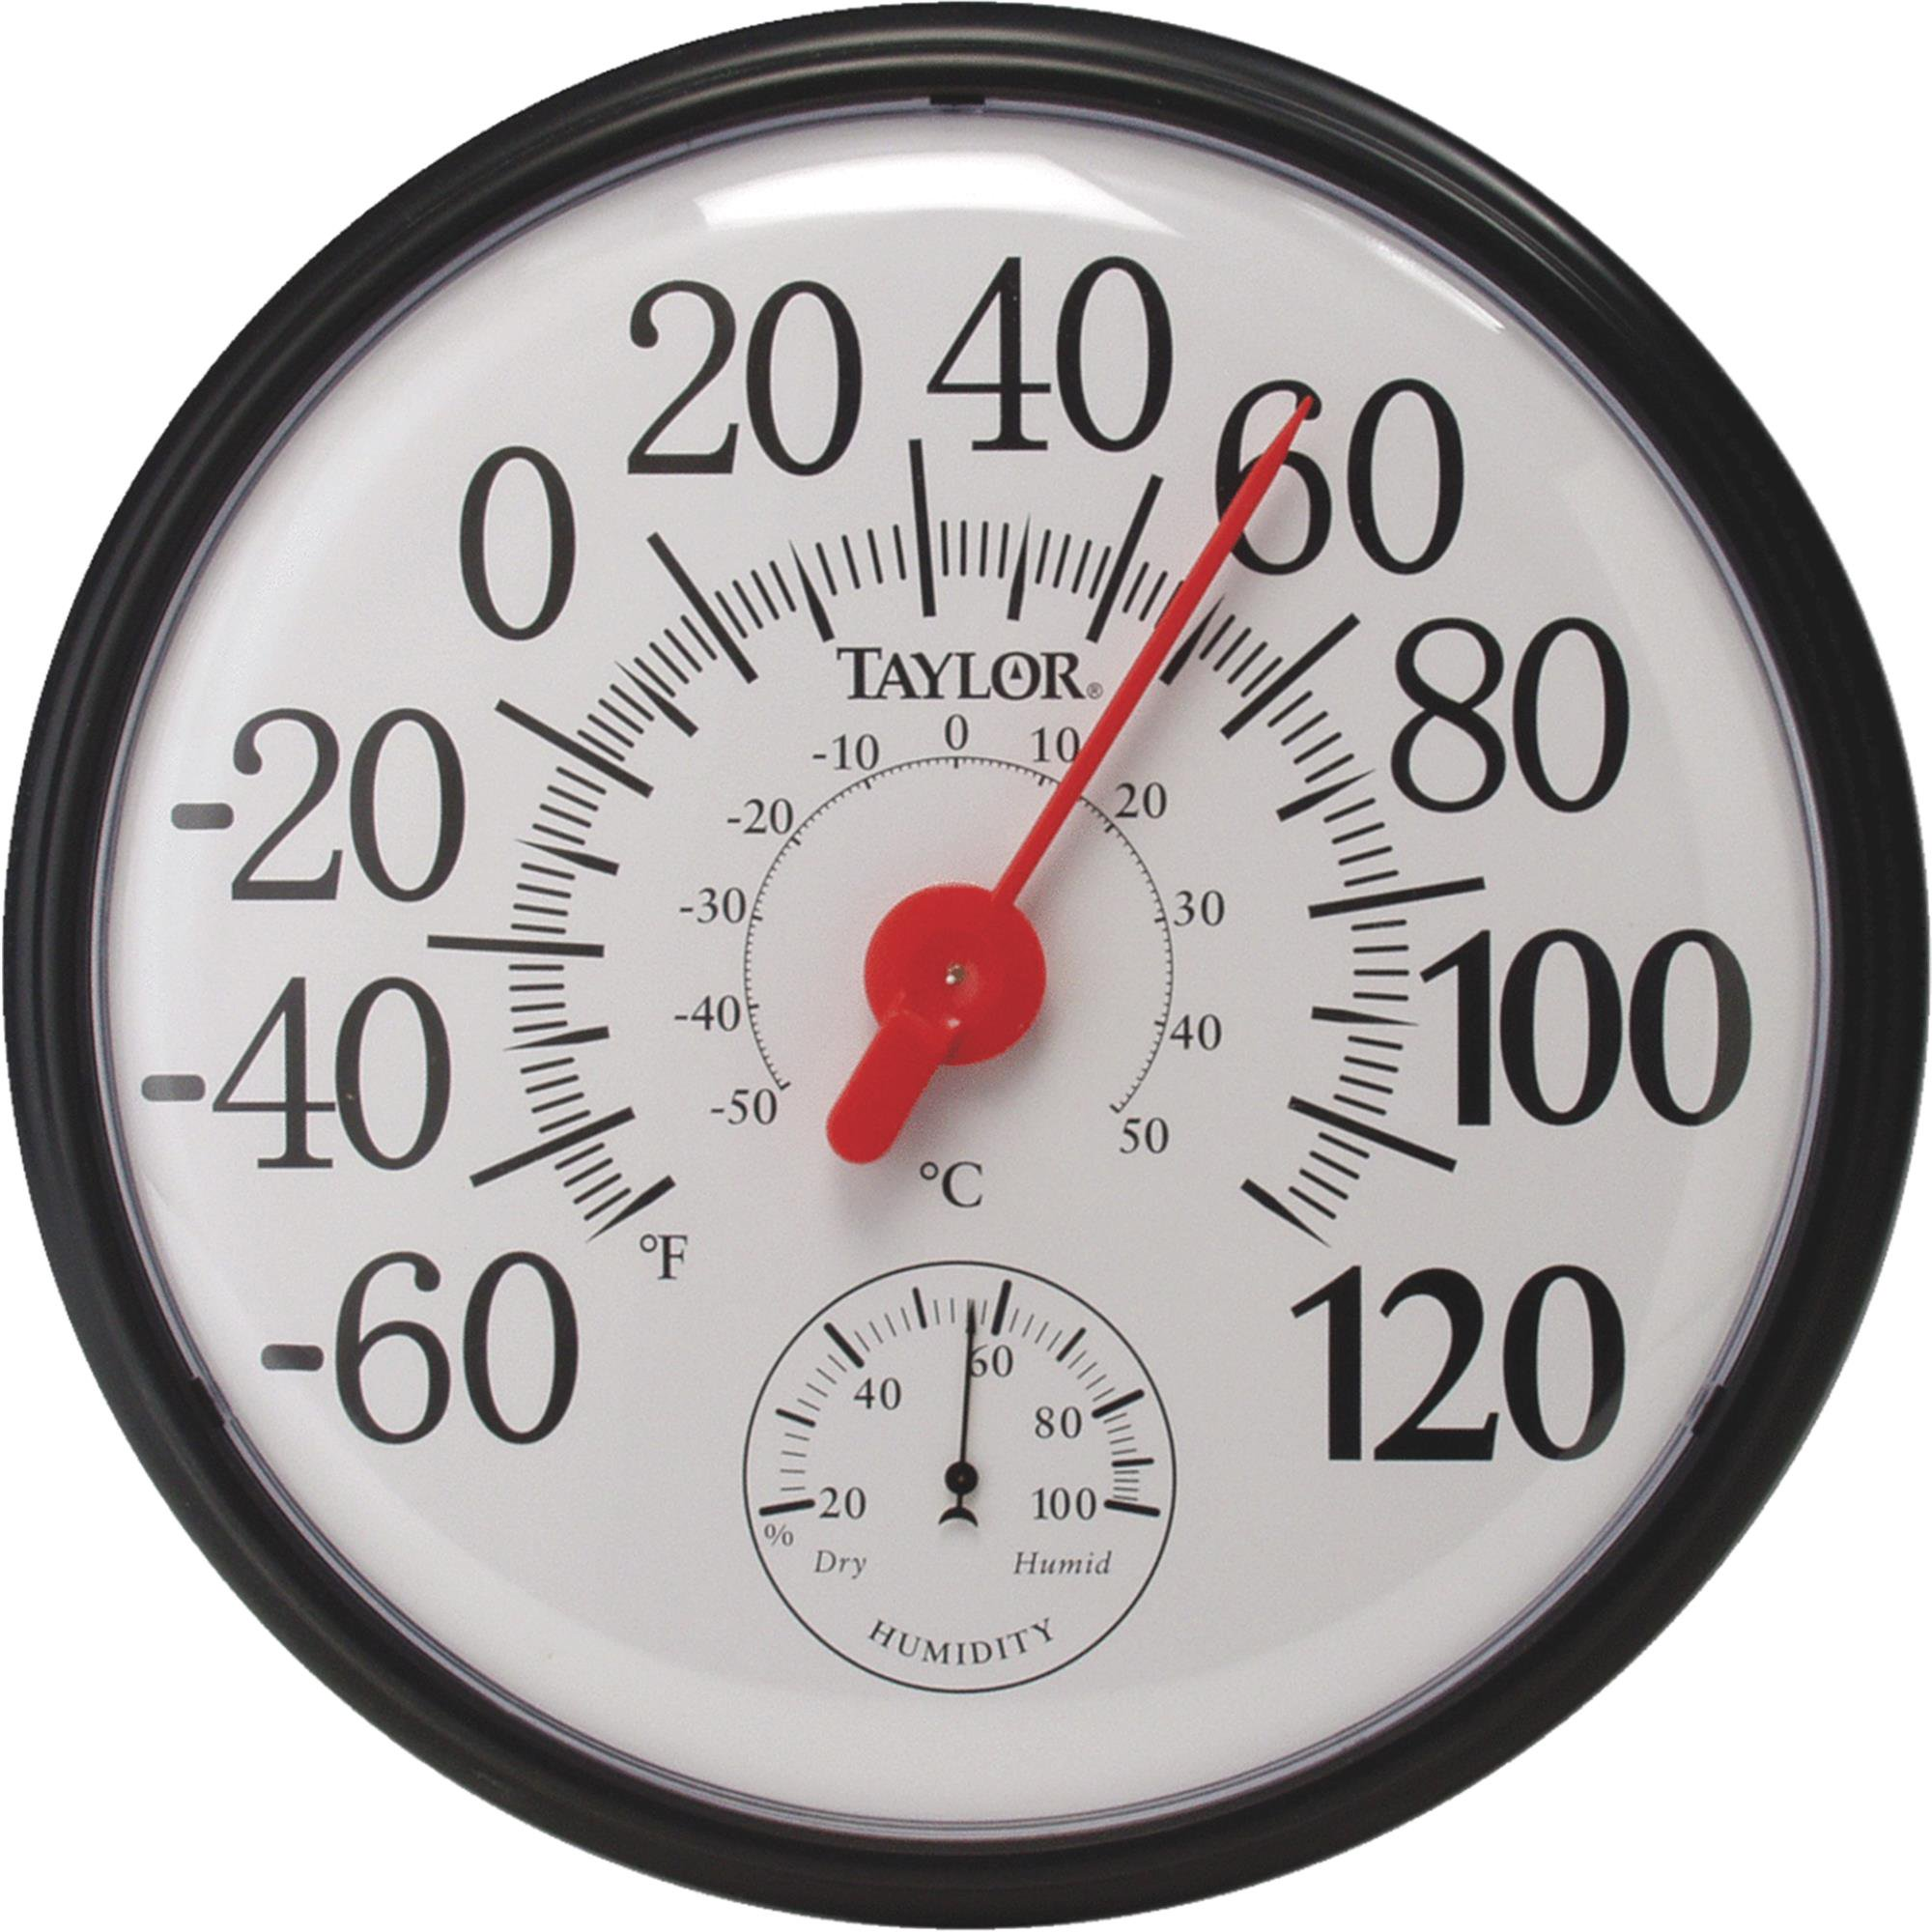 Taylor Outdoor Hygrometer & Thermometer